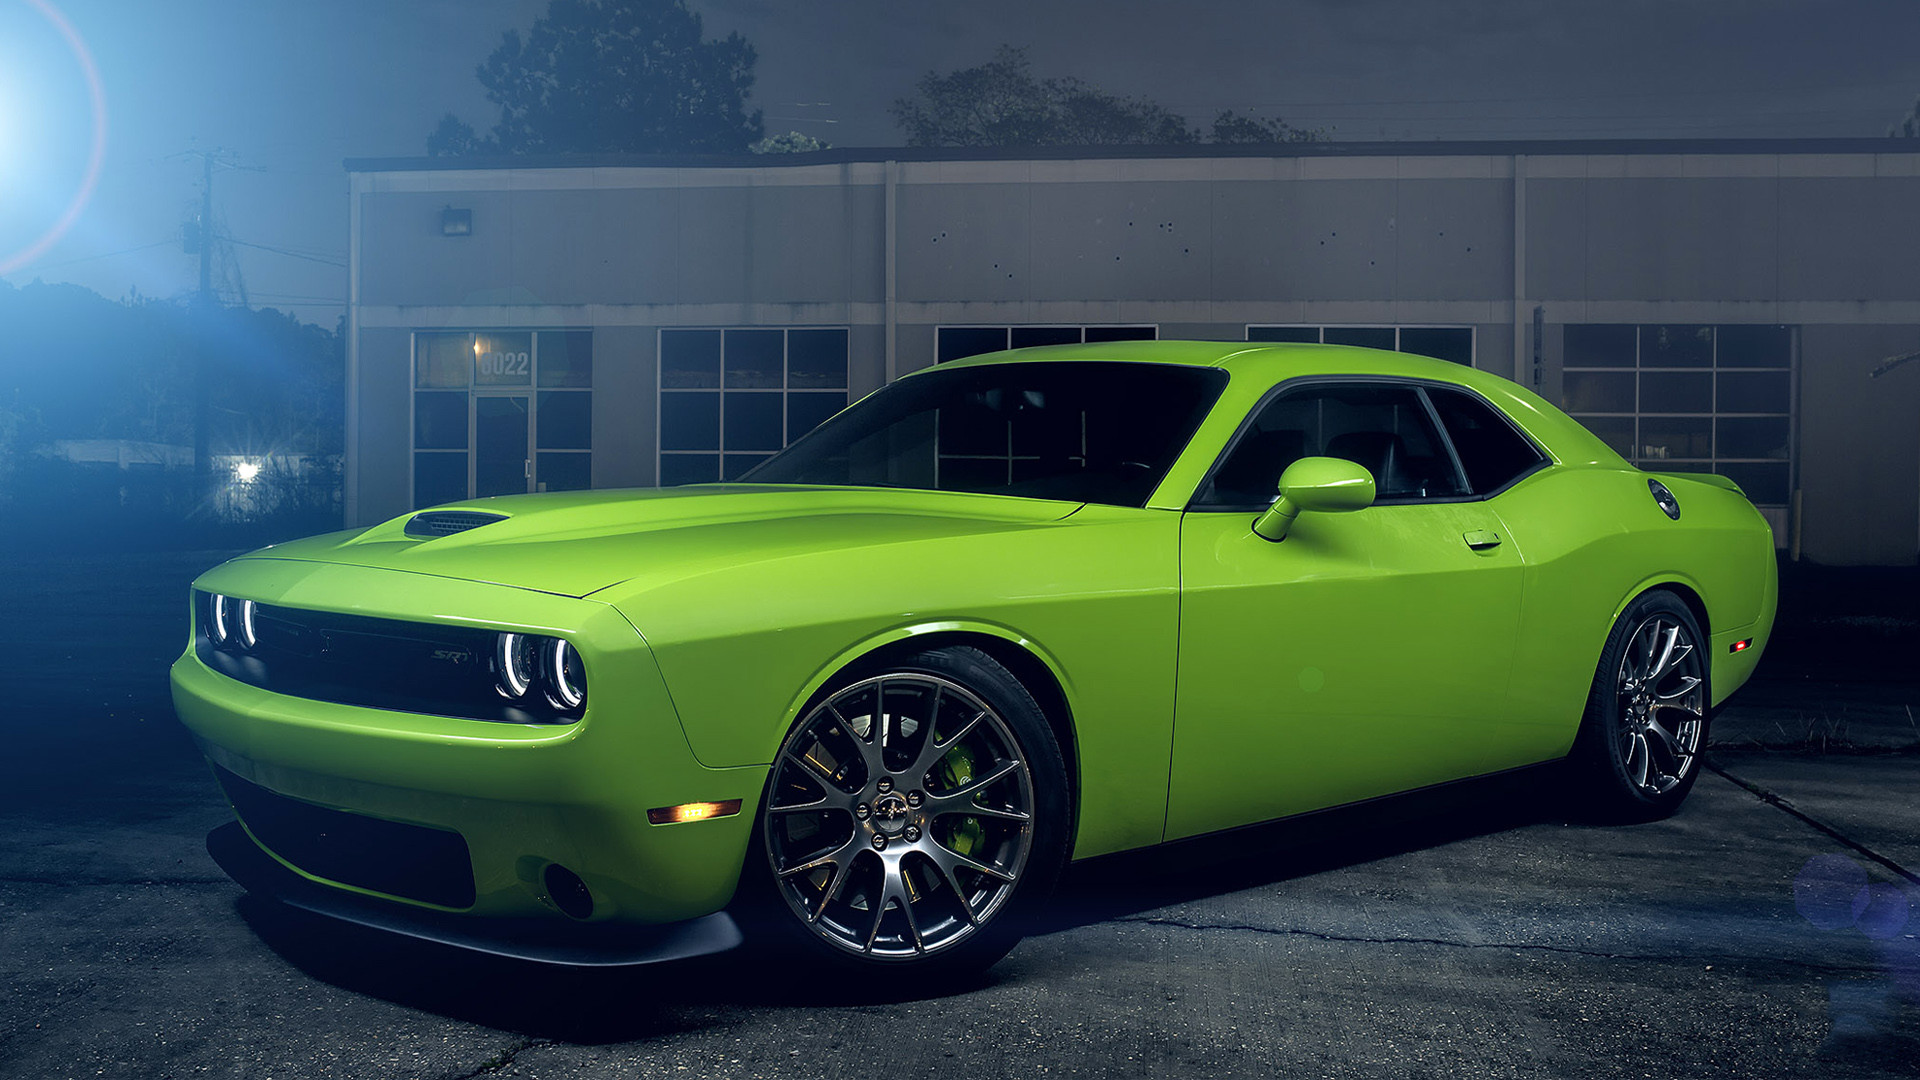 Challenger Hd Wallpaper Dodge Challenger Hellcat Wallpaper Hd 65 Images